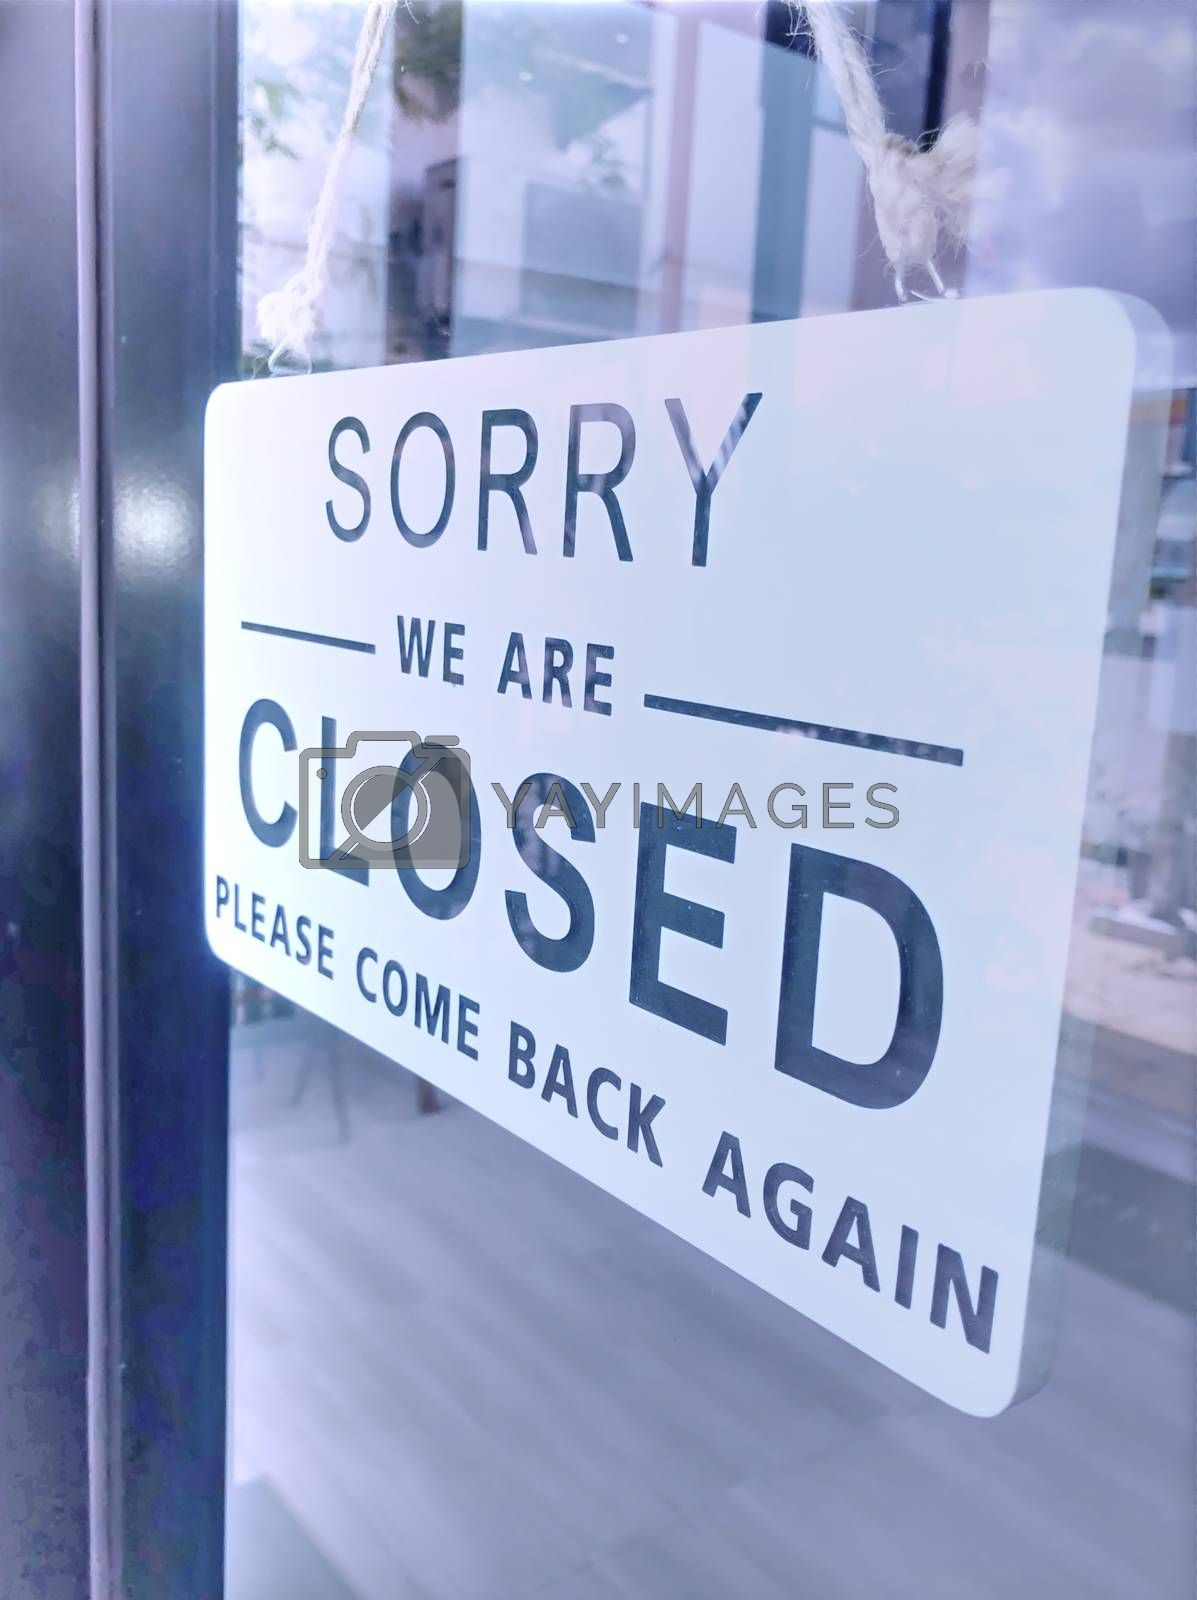 The sign of the coffee shop shows a temporary closure due to the coronavirus outbreak.